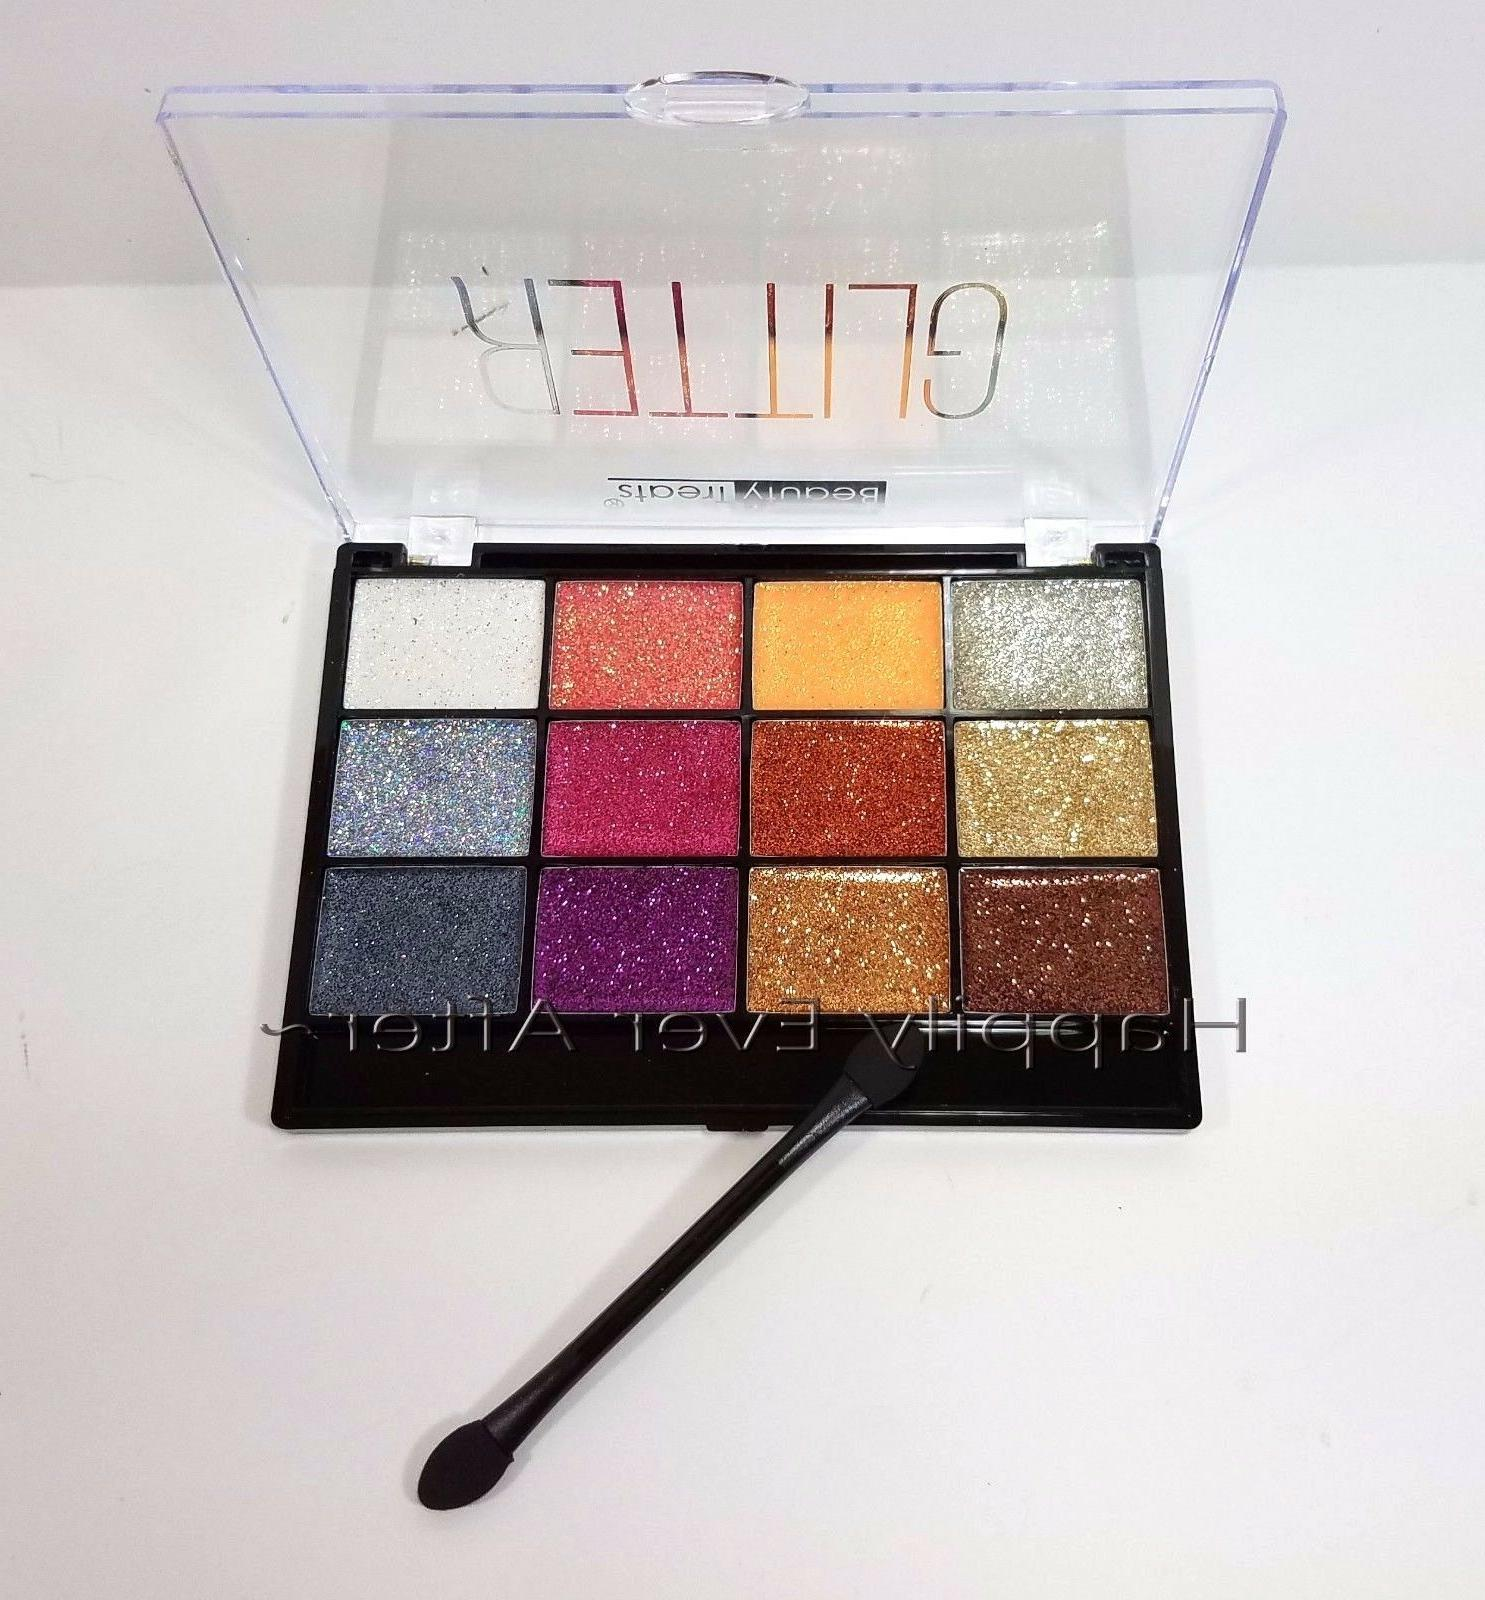 All 2 Beauty Palettes- US